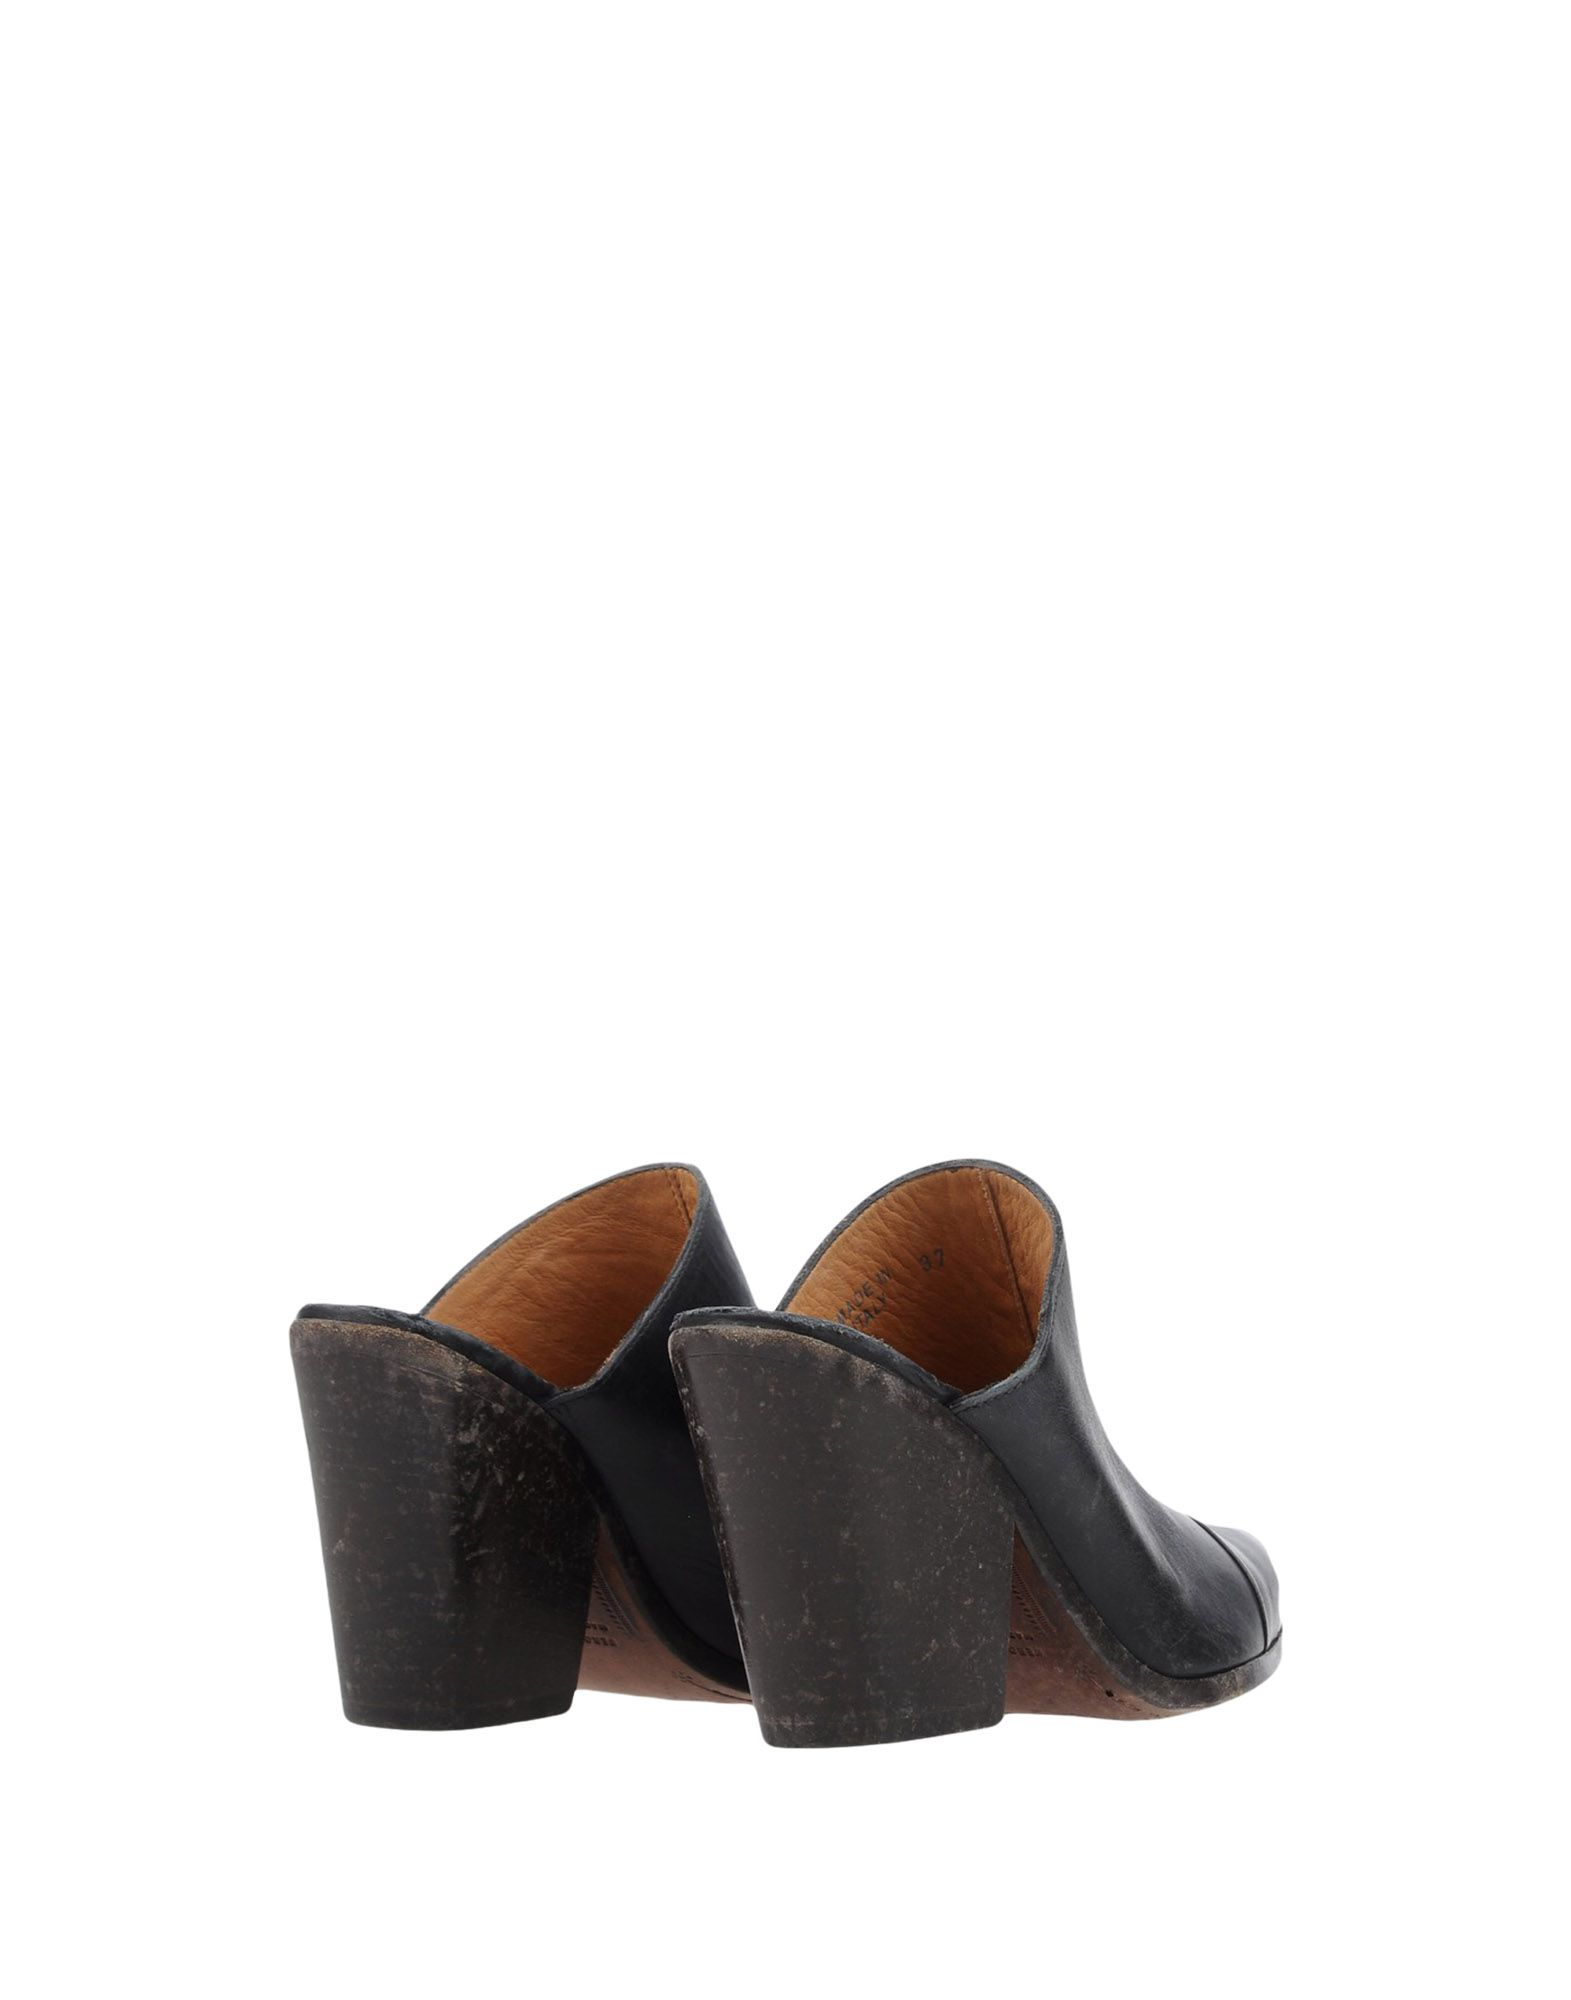 Mules Golden Goose Deluxe Brand Femme - Mules Golden Goose Deluxe Brand sur